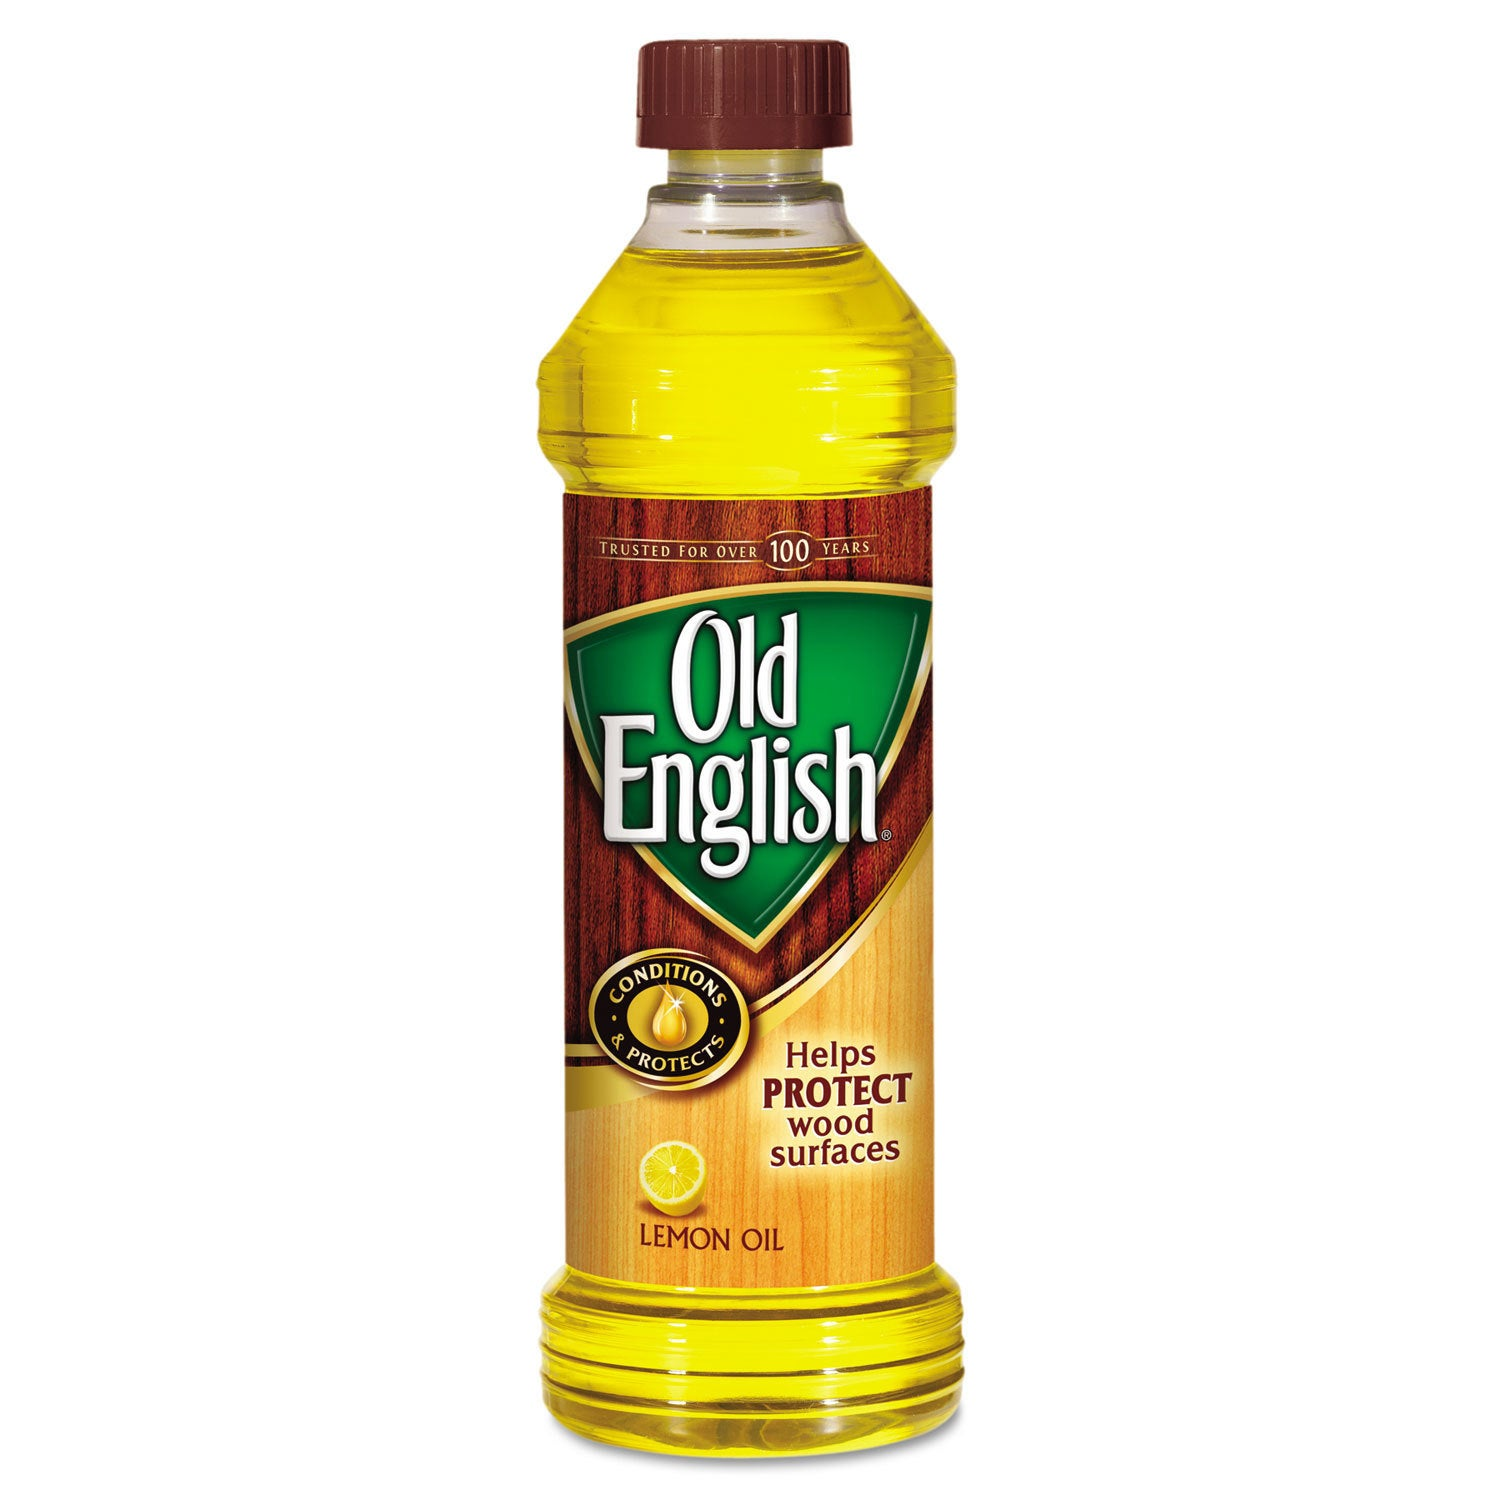 Old English Furniture Polish Lemon (Yellow) Oil 16-ounce ...